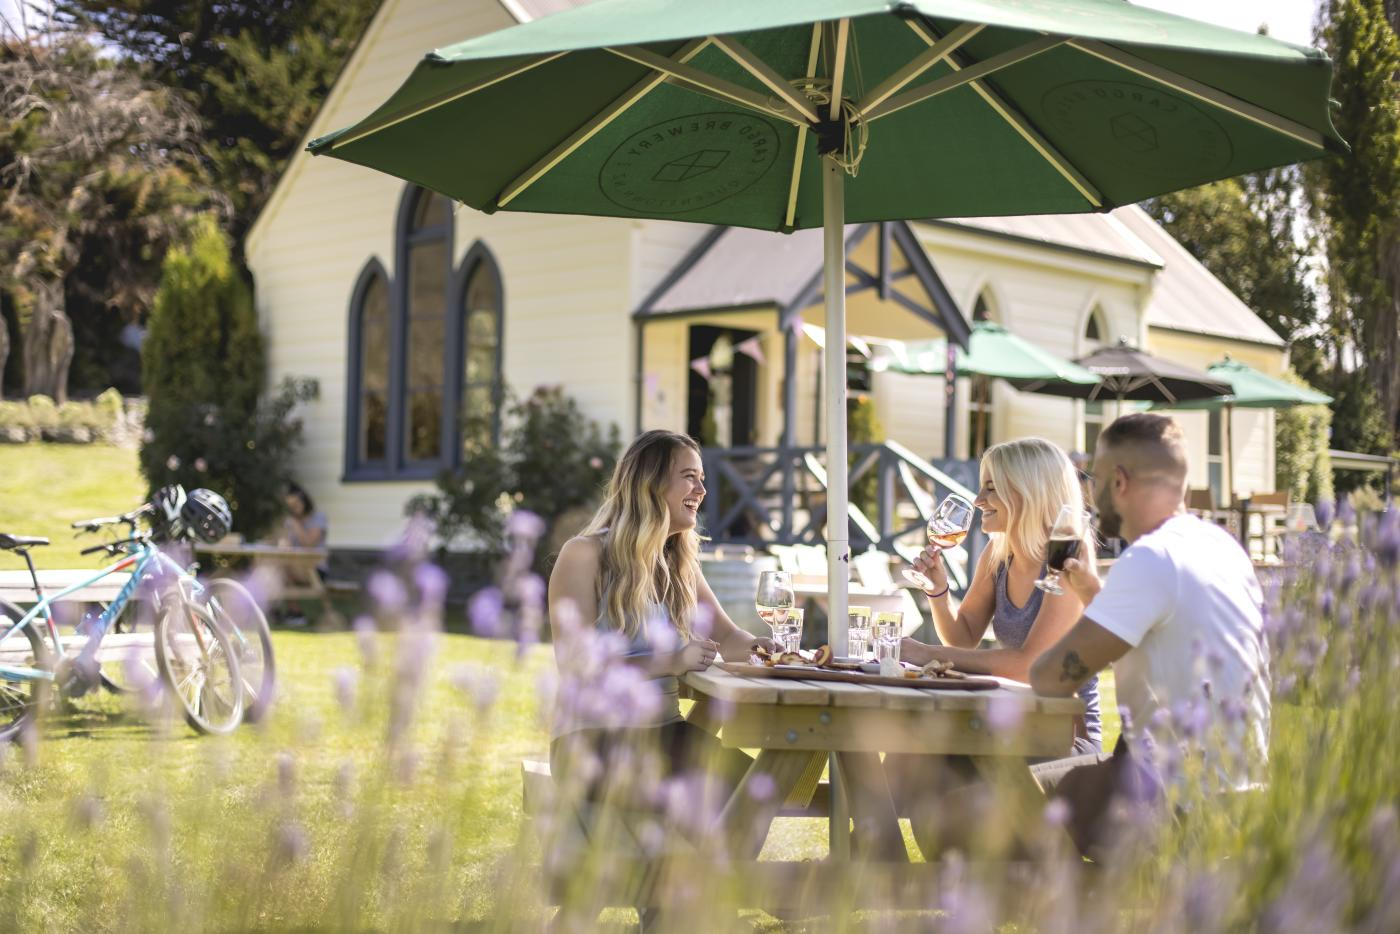 Al-fresco dining with friends at Cargo Brewery, Gibbston